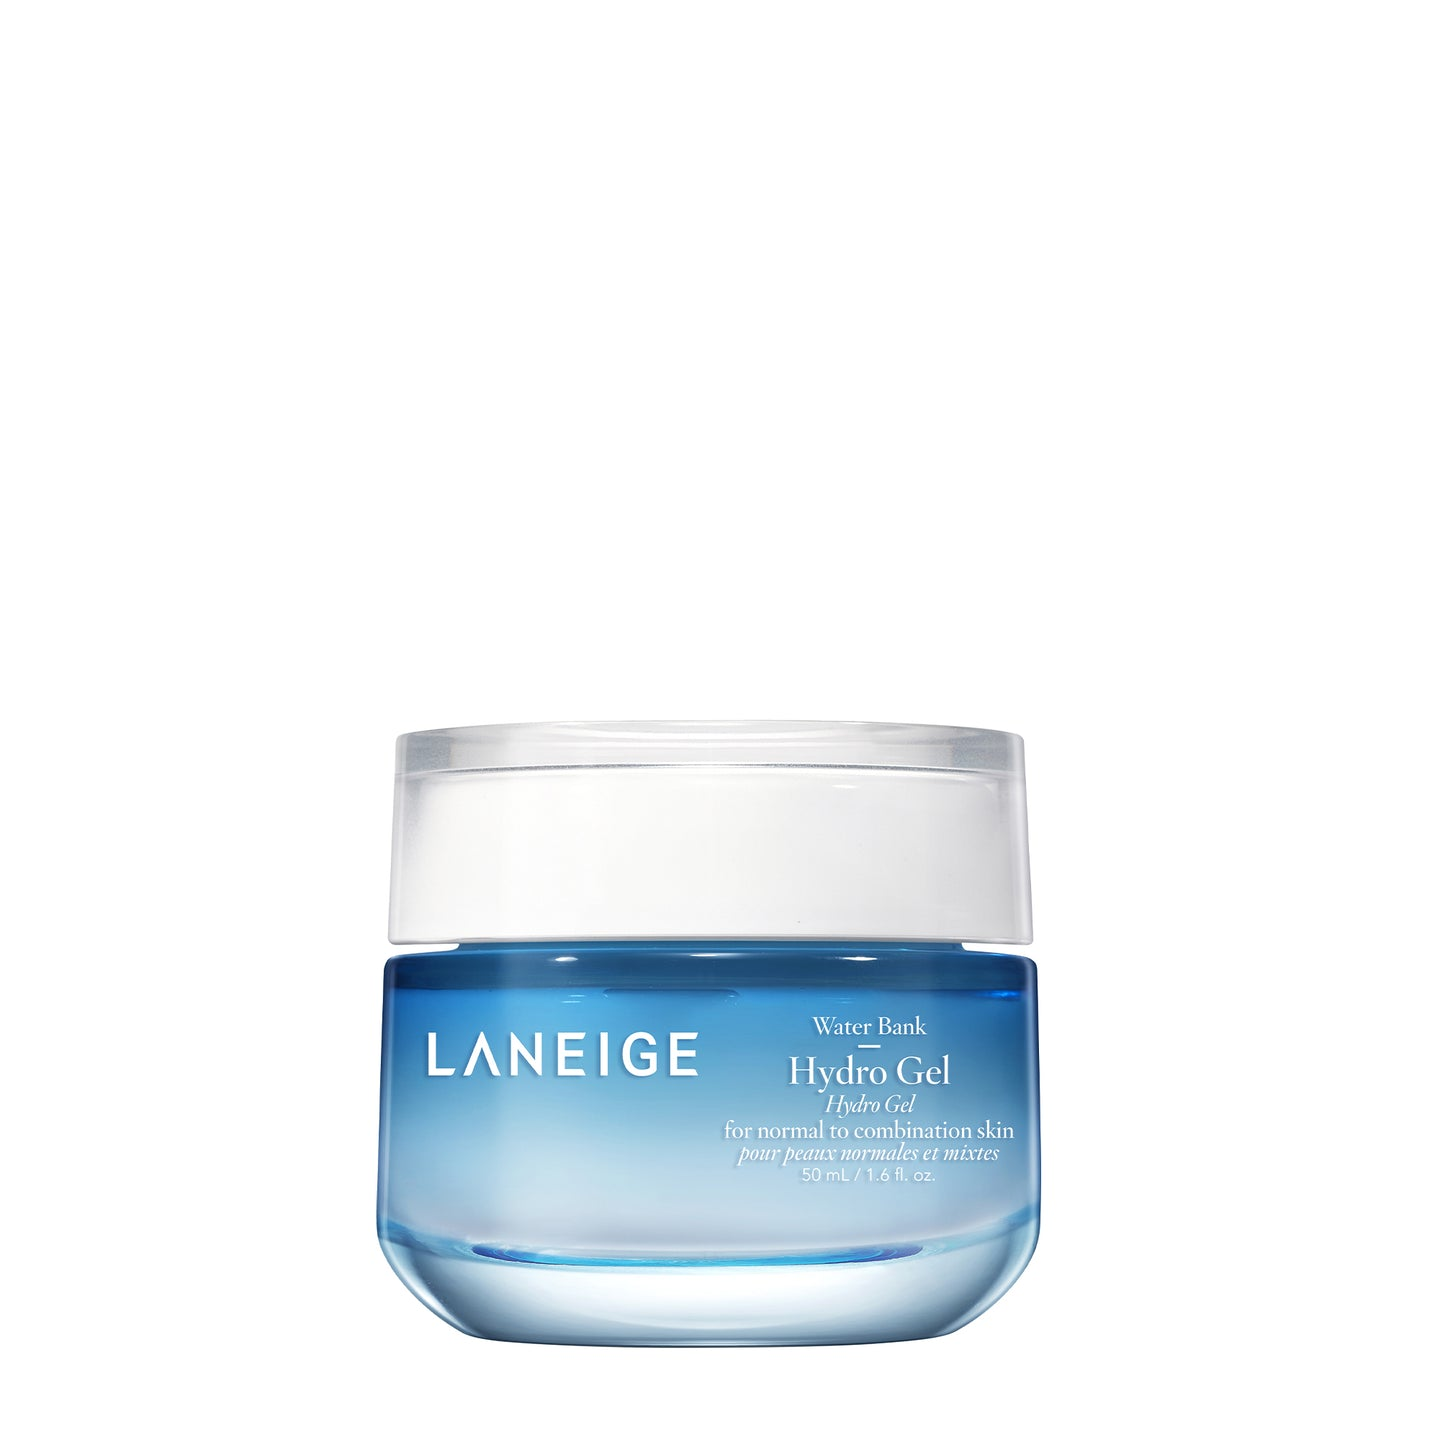 Water Bank Hydro Gel